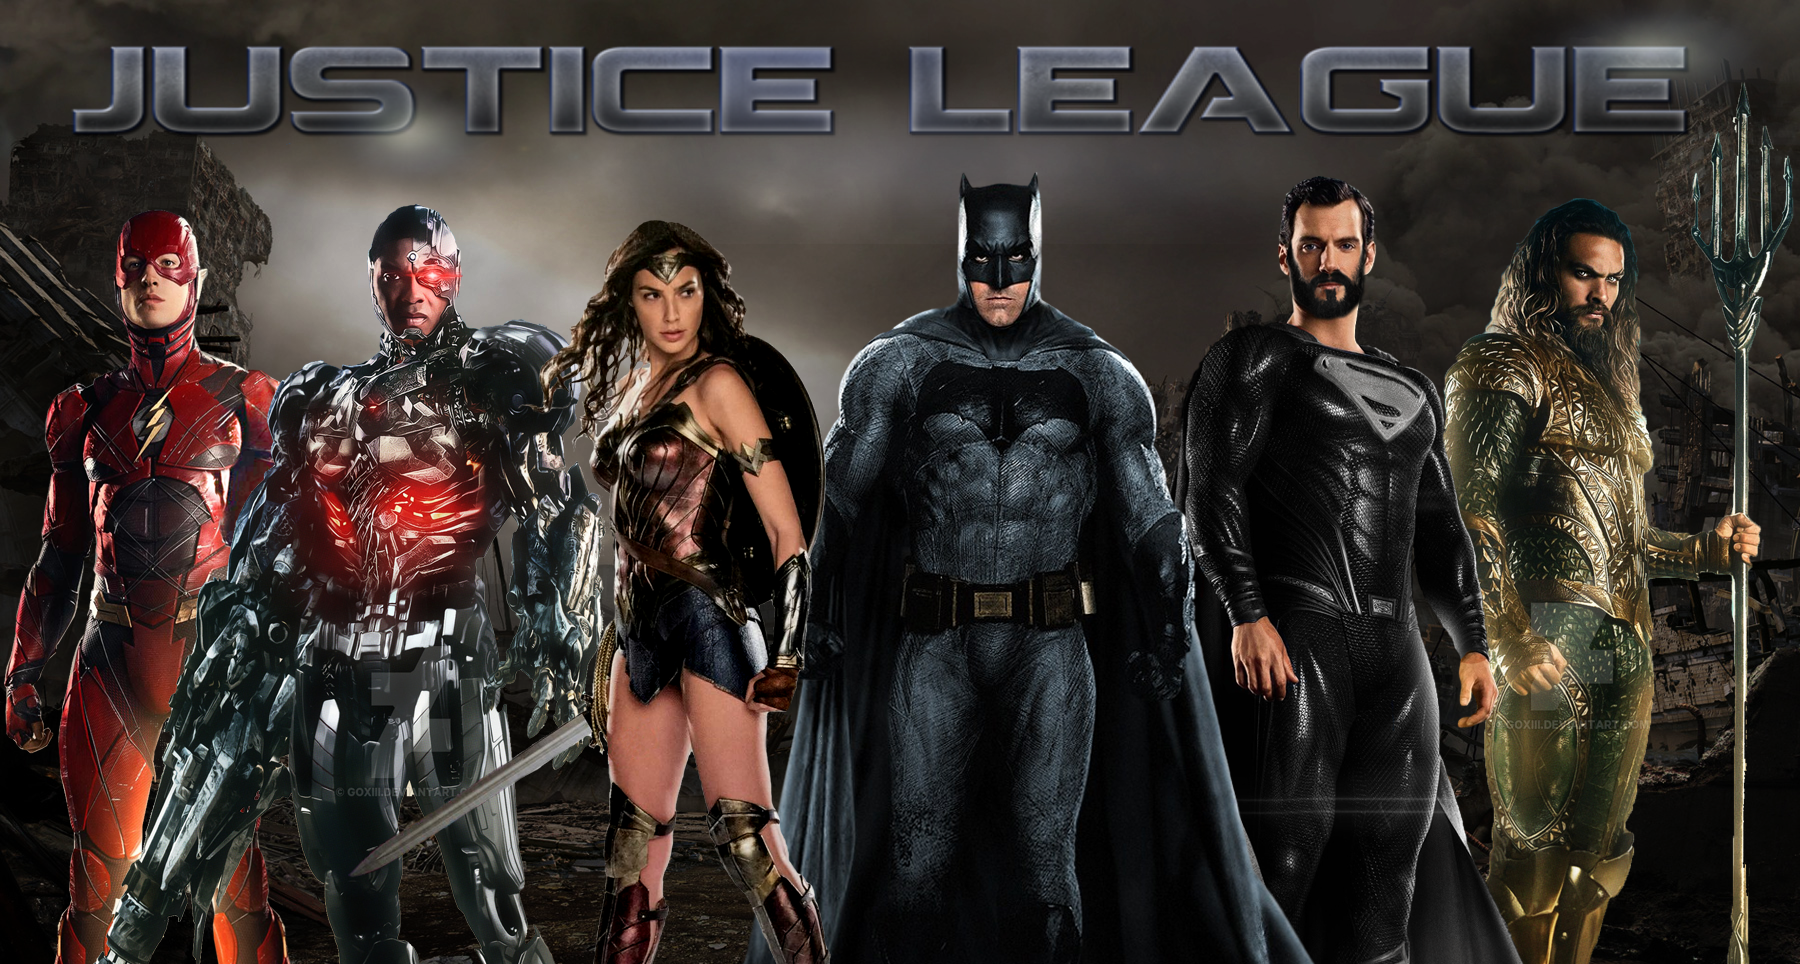 DCEU Justice League Wallpaper